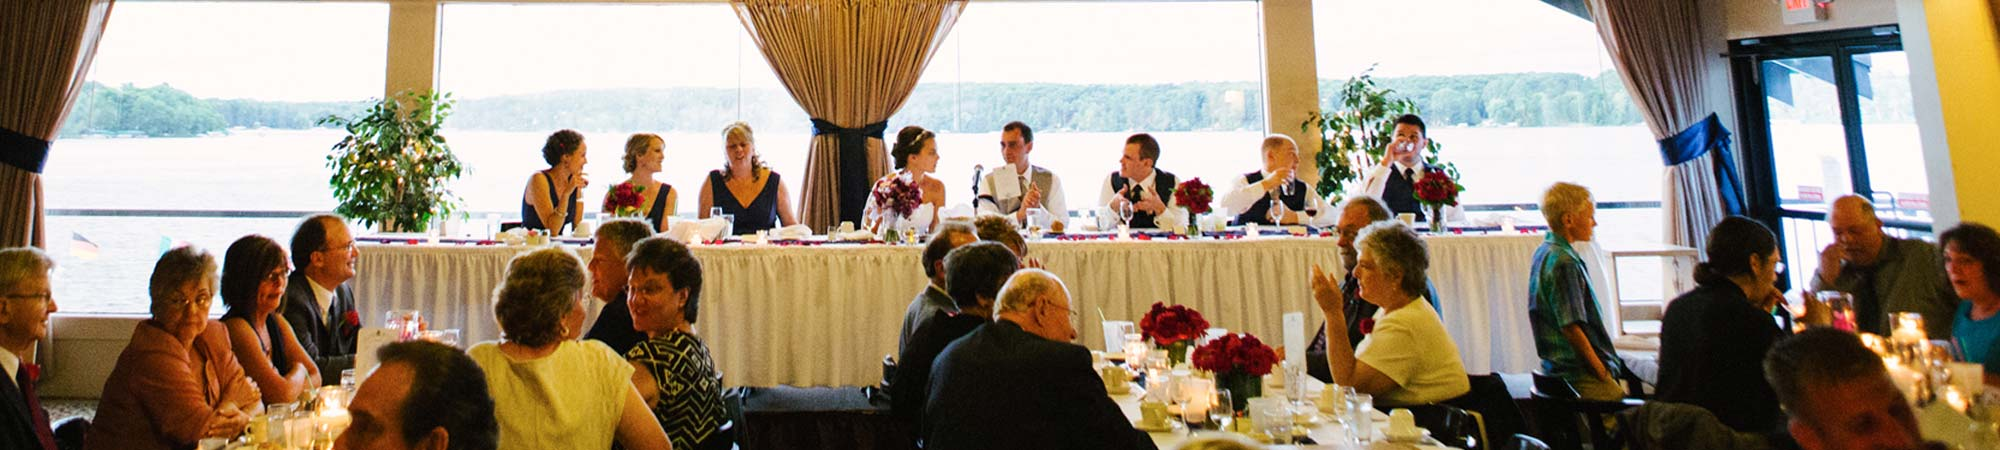 slide-wedding_dining_2000x450